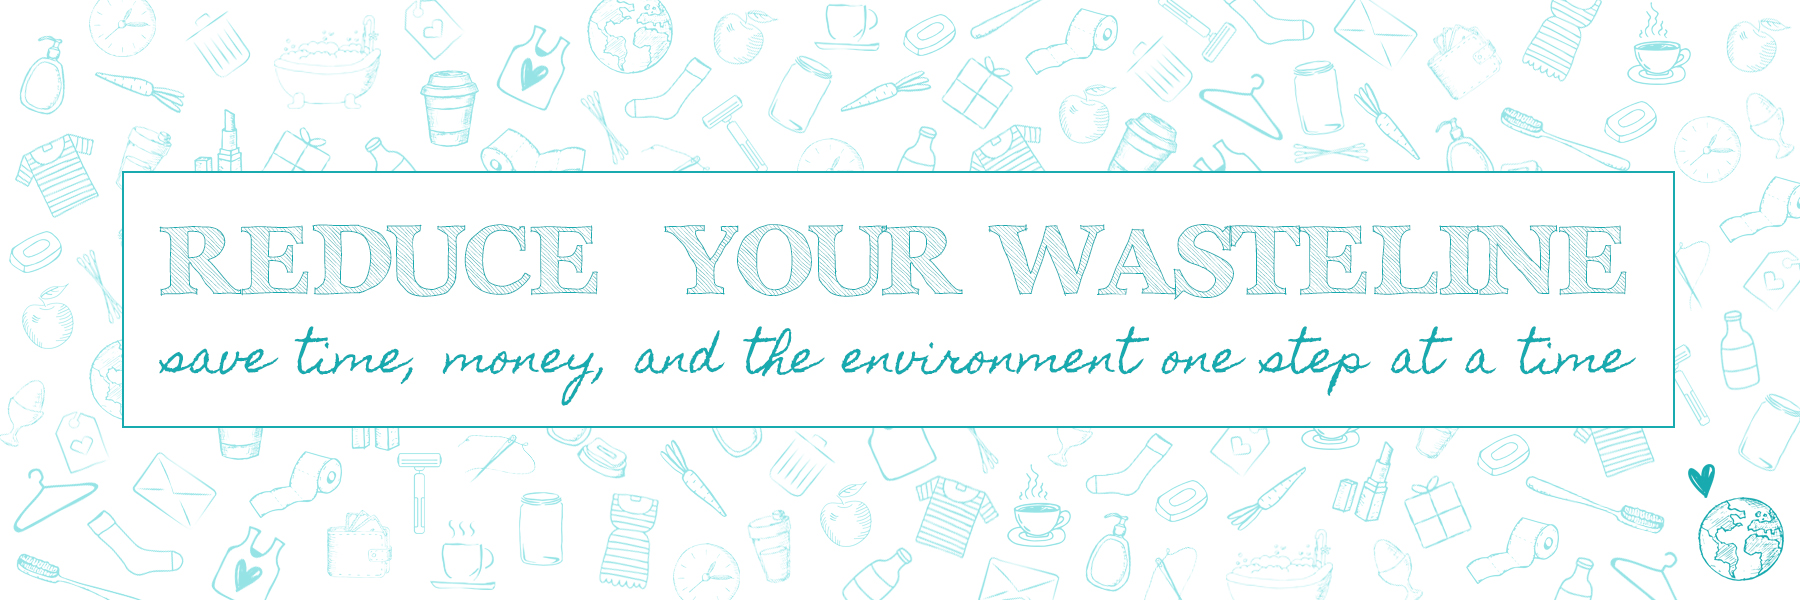 Reduce Your Wasteline